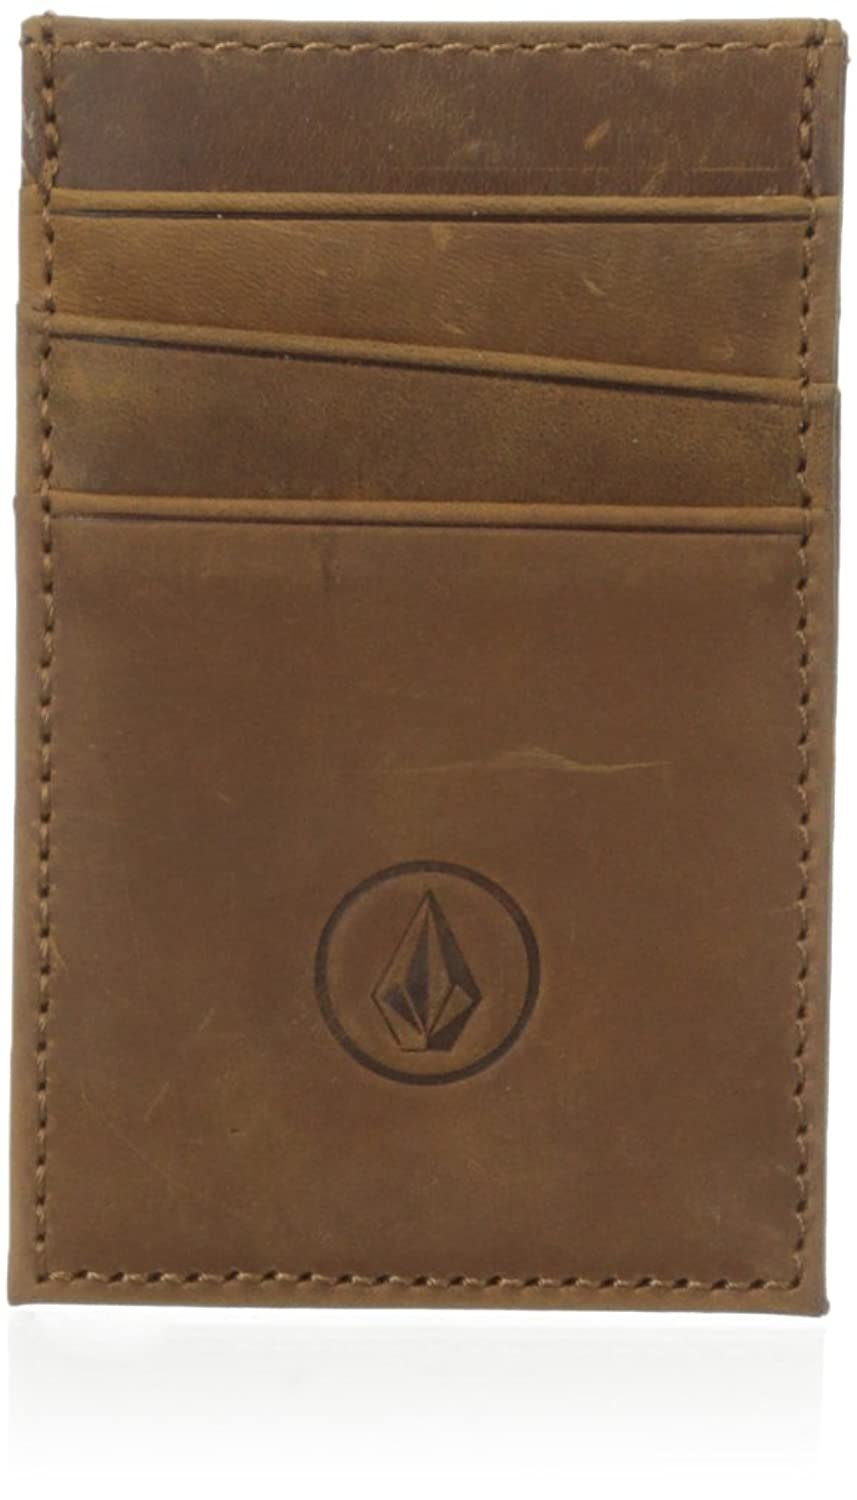 volcom men's carded wallet 棕色 one size/small